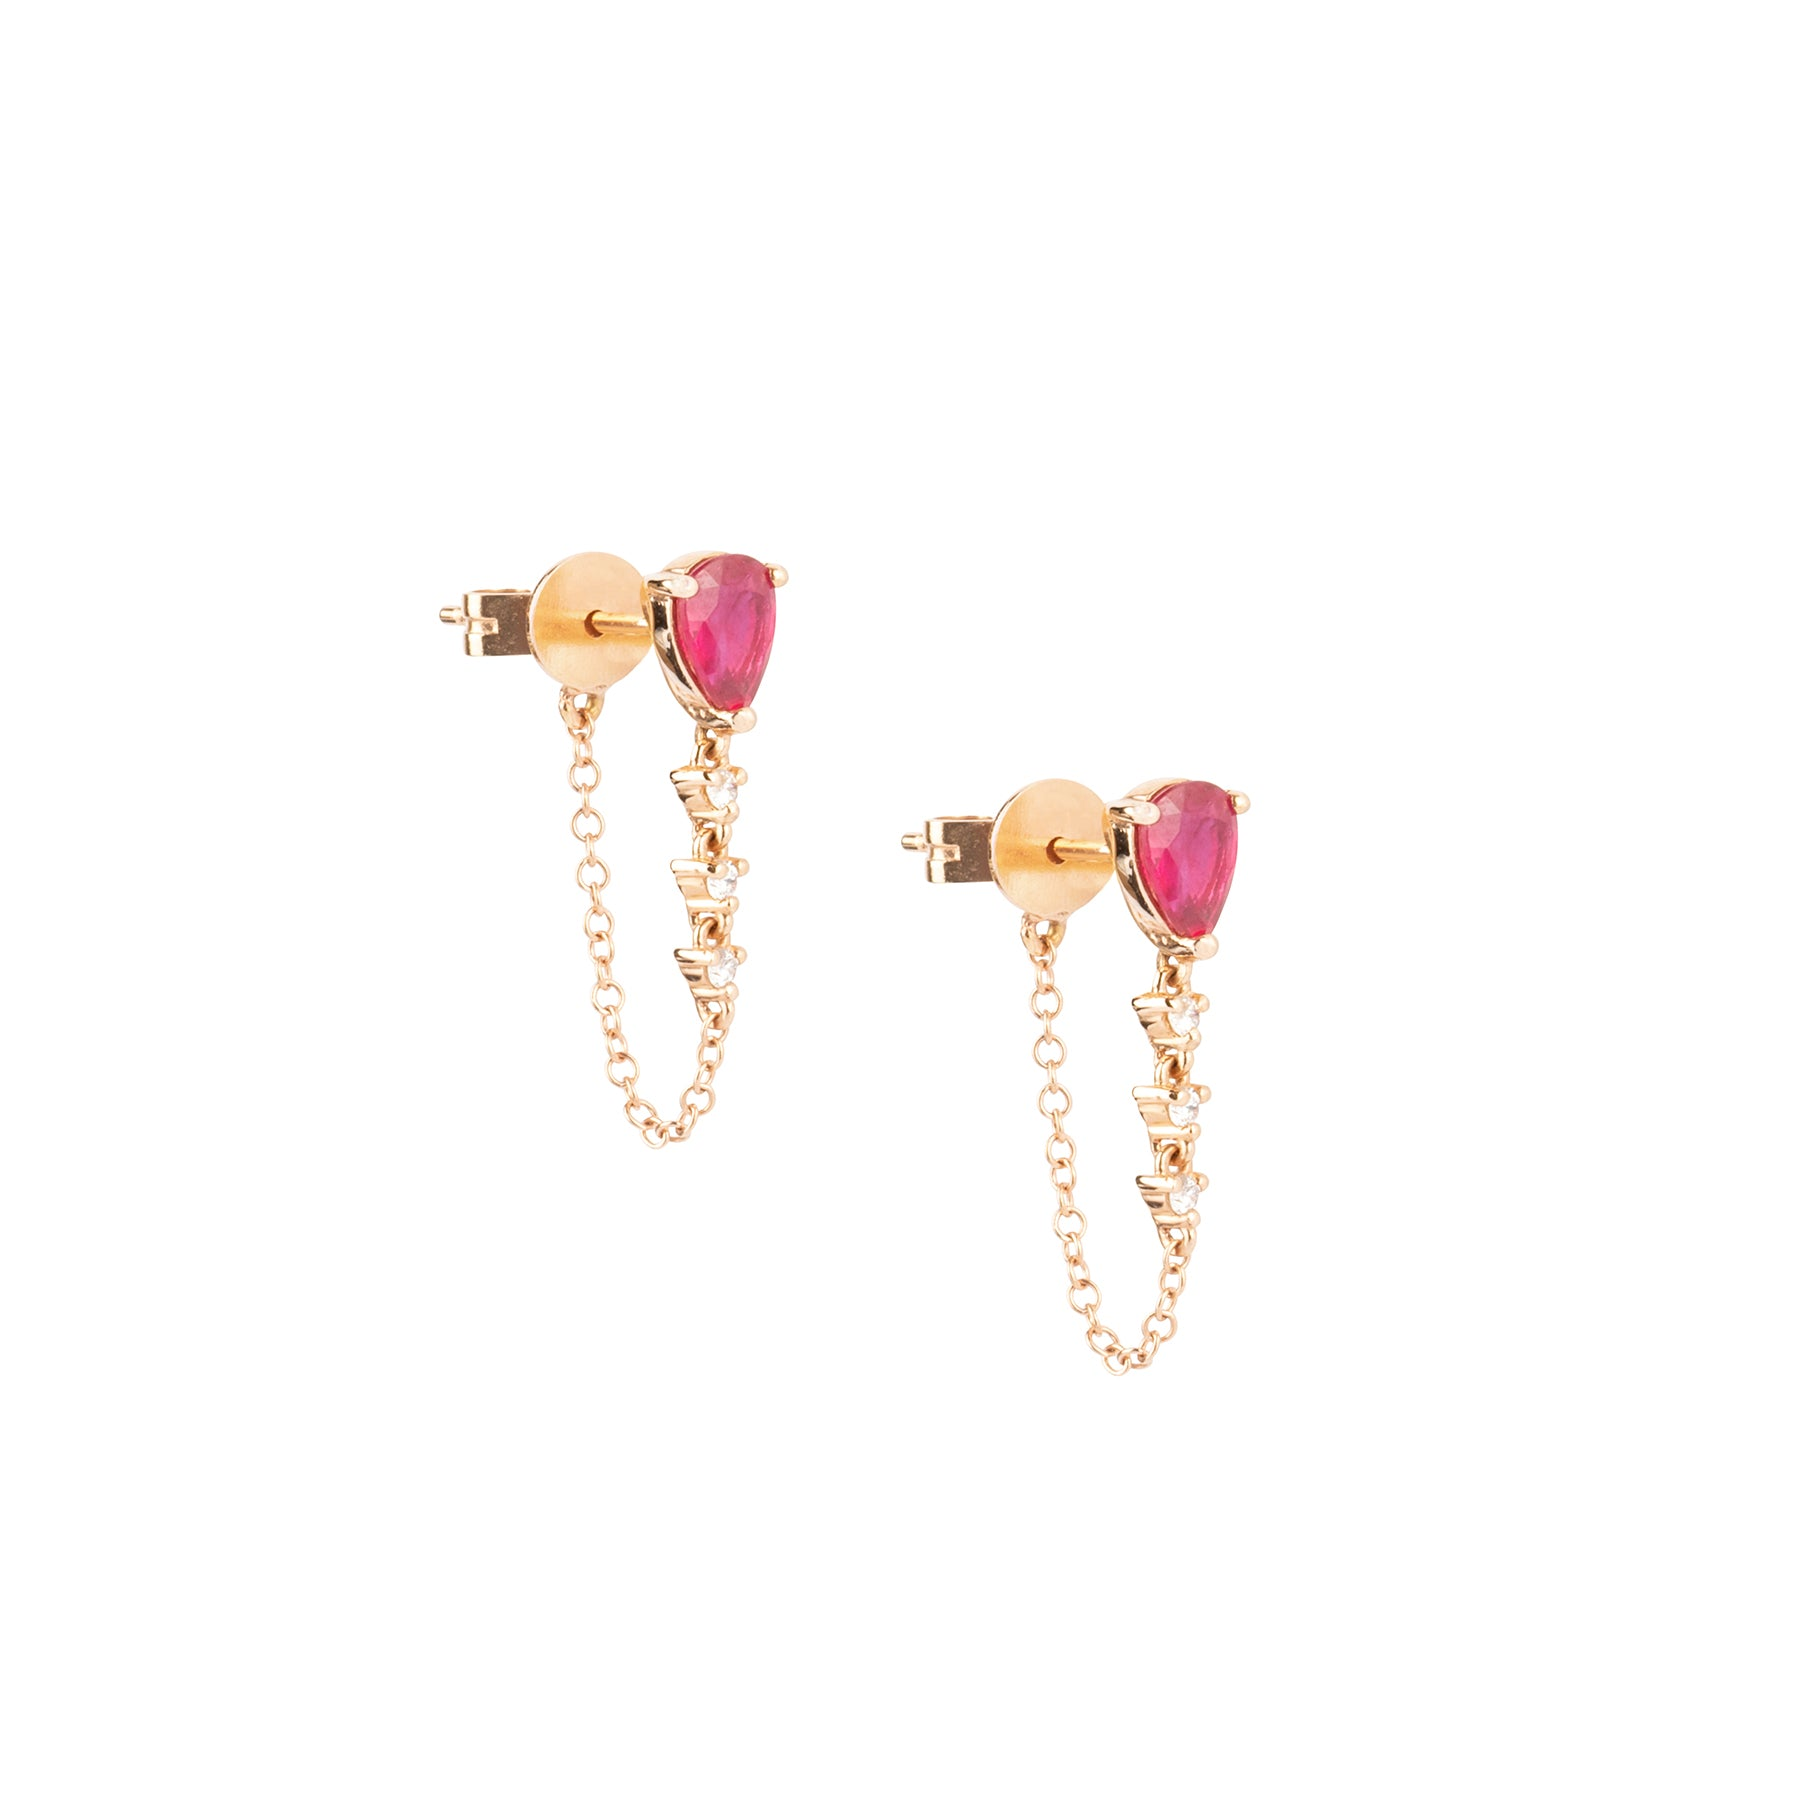 Ruby Tear 3 Diamond Chain Connect Studs